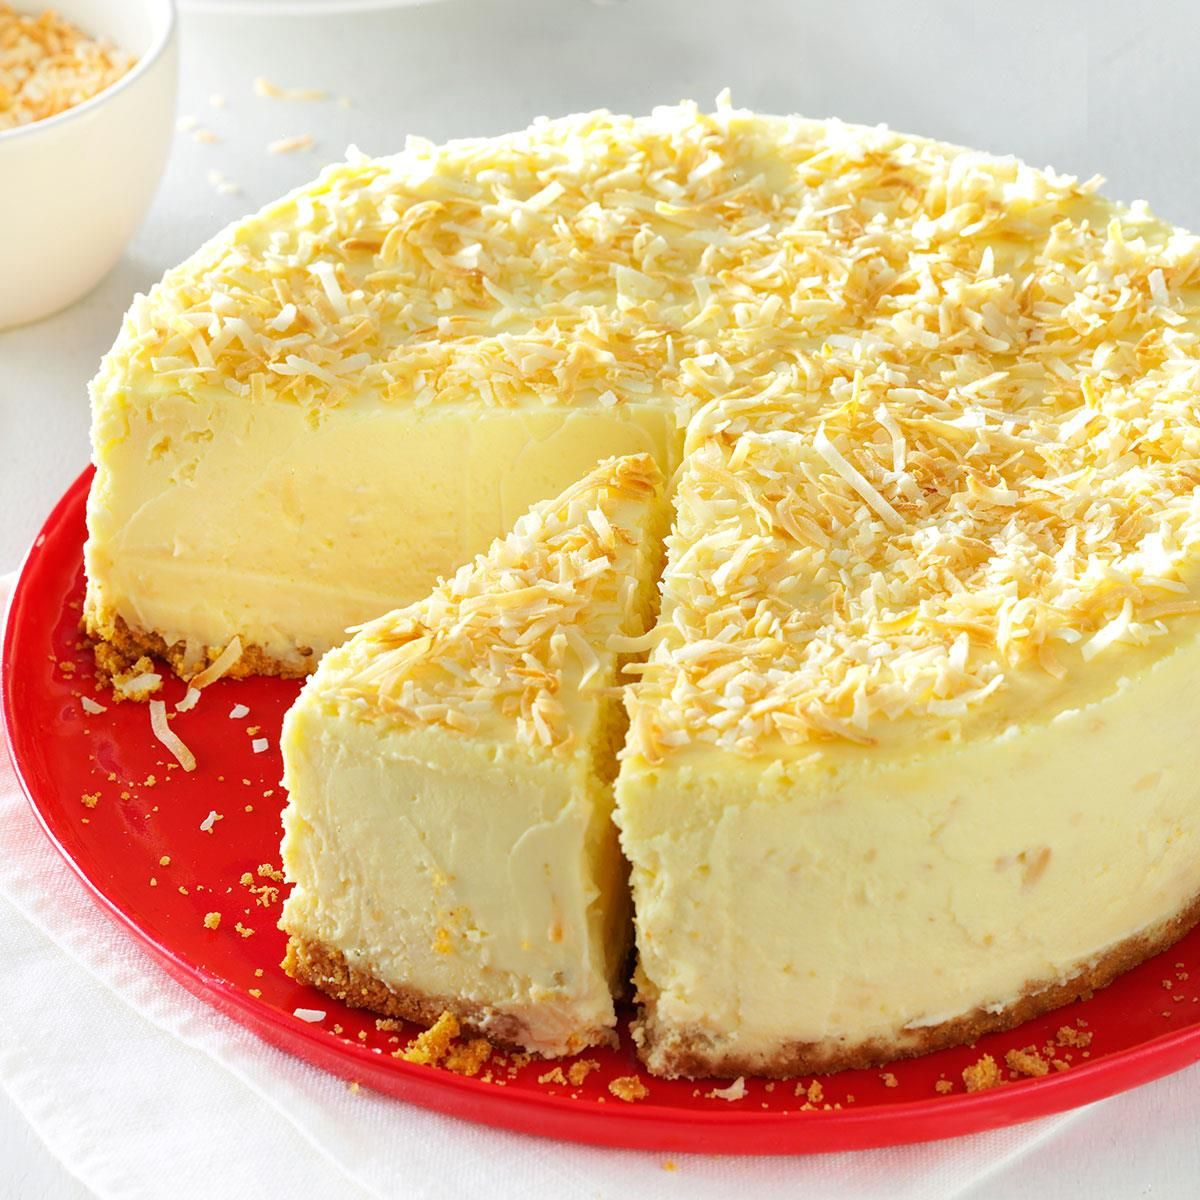 Coconut White Chocolate Cheesecake Recipe White Chocolate Cheesecake Recipes Cheesecake Recipes Chocolate Cheesecake Recipes